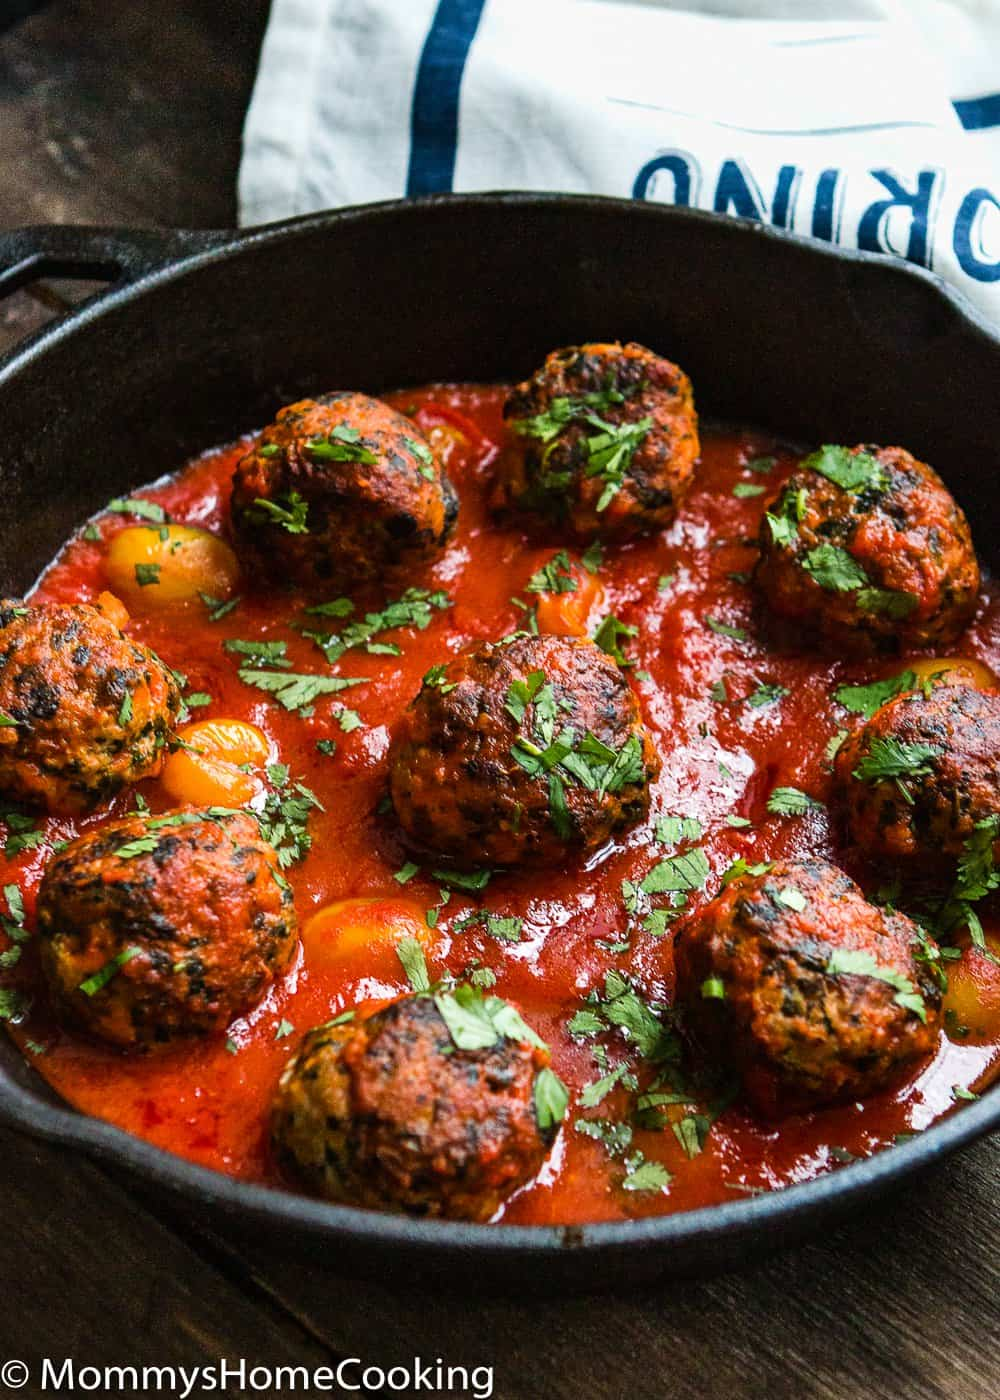 Eggless turkey meat balls with tomato sauce in a cast iron skillet.